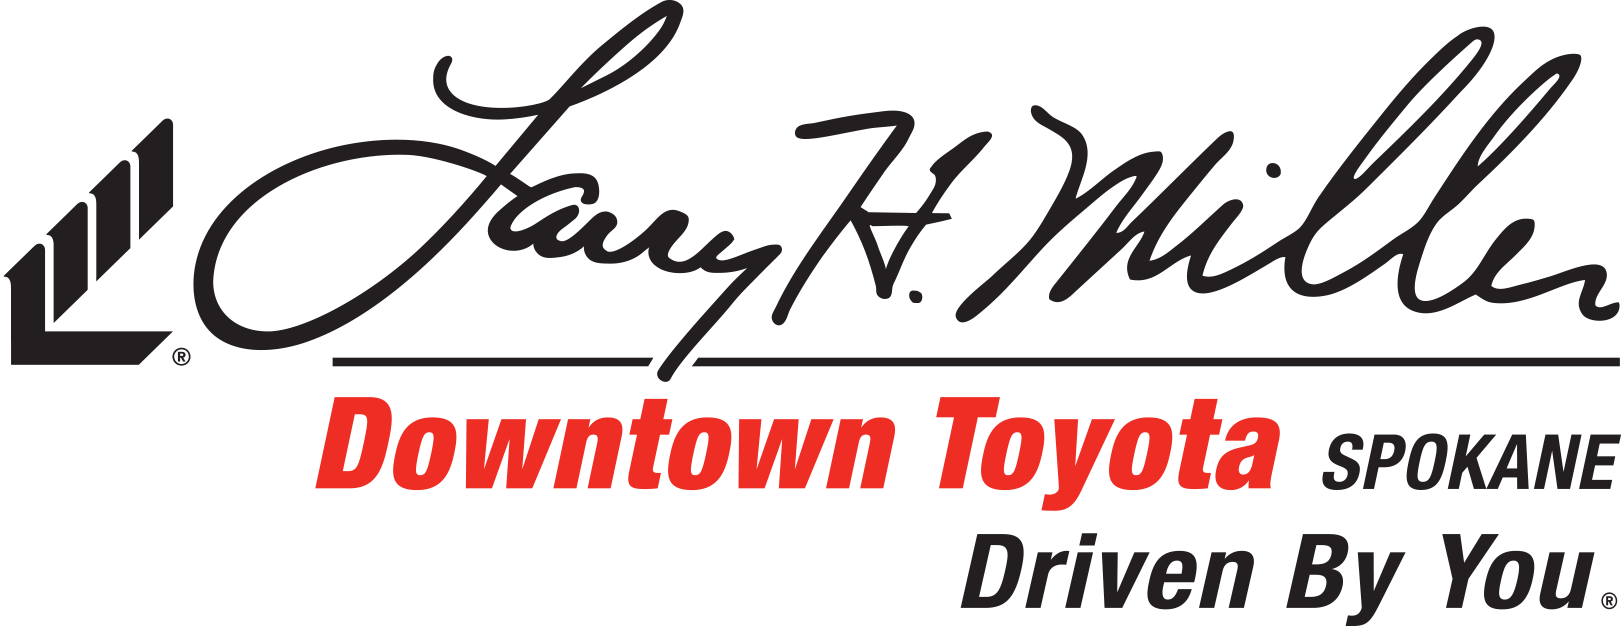 sell your car at larry h miller downtown toyota spokane serving spokane valley pullman. Black Bedroom Furniture Sets. Home Design Ideas